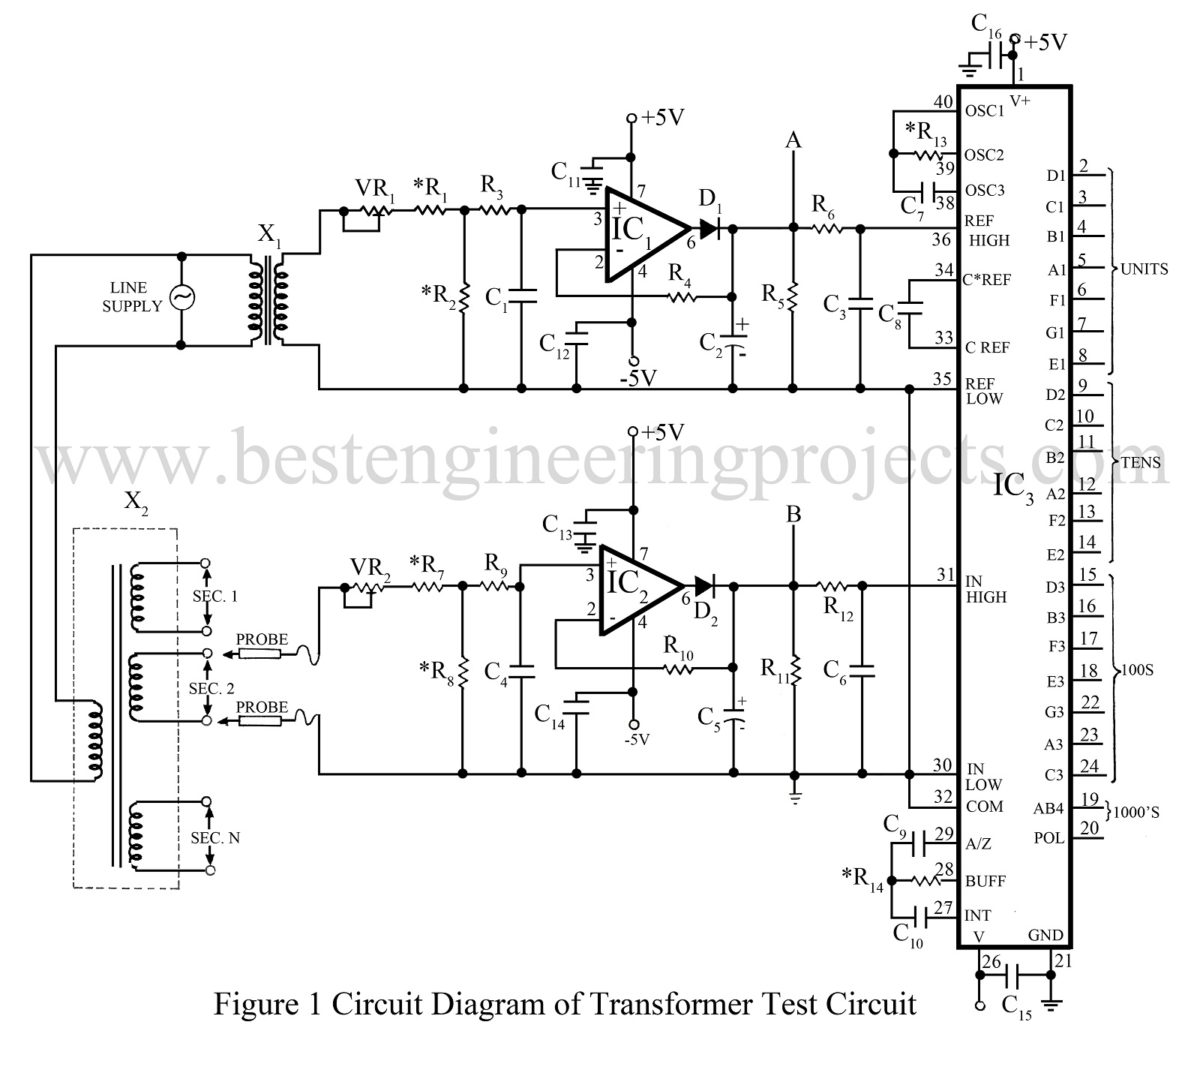 Transformer Test Circuit To Overcome Line Voltage Variation P N Junction Diagram